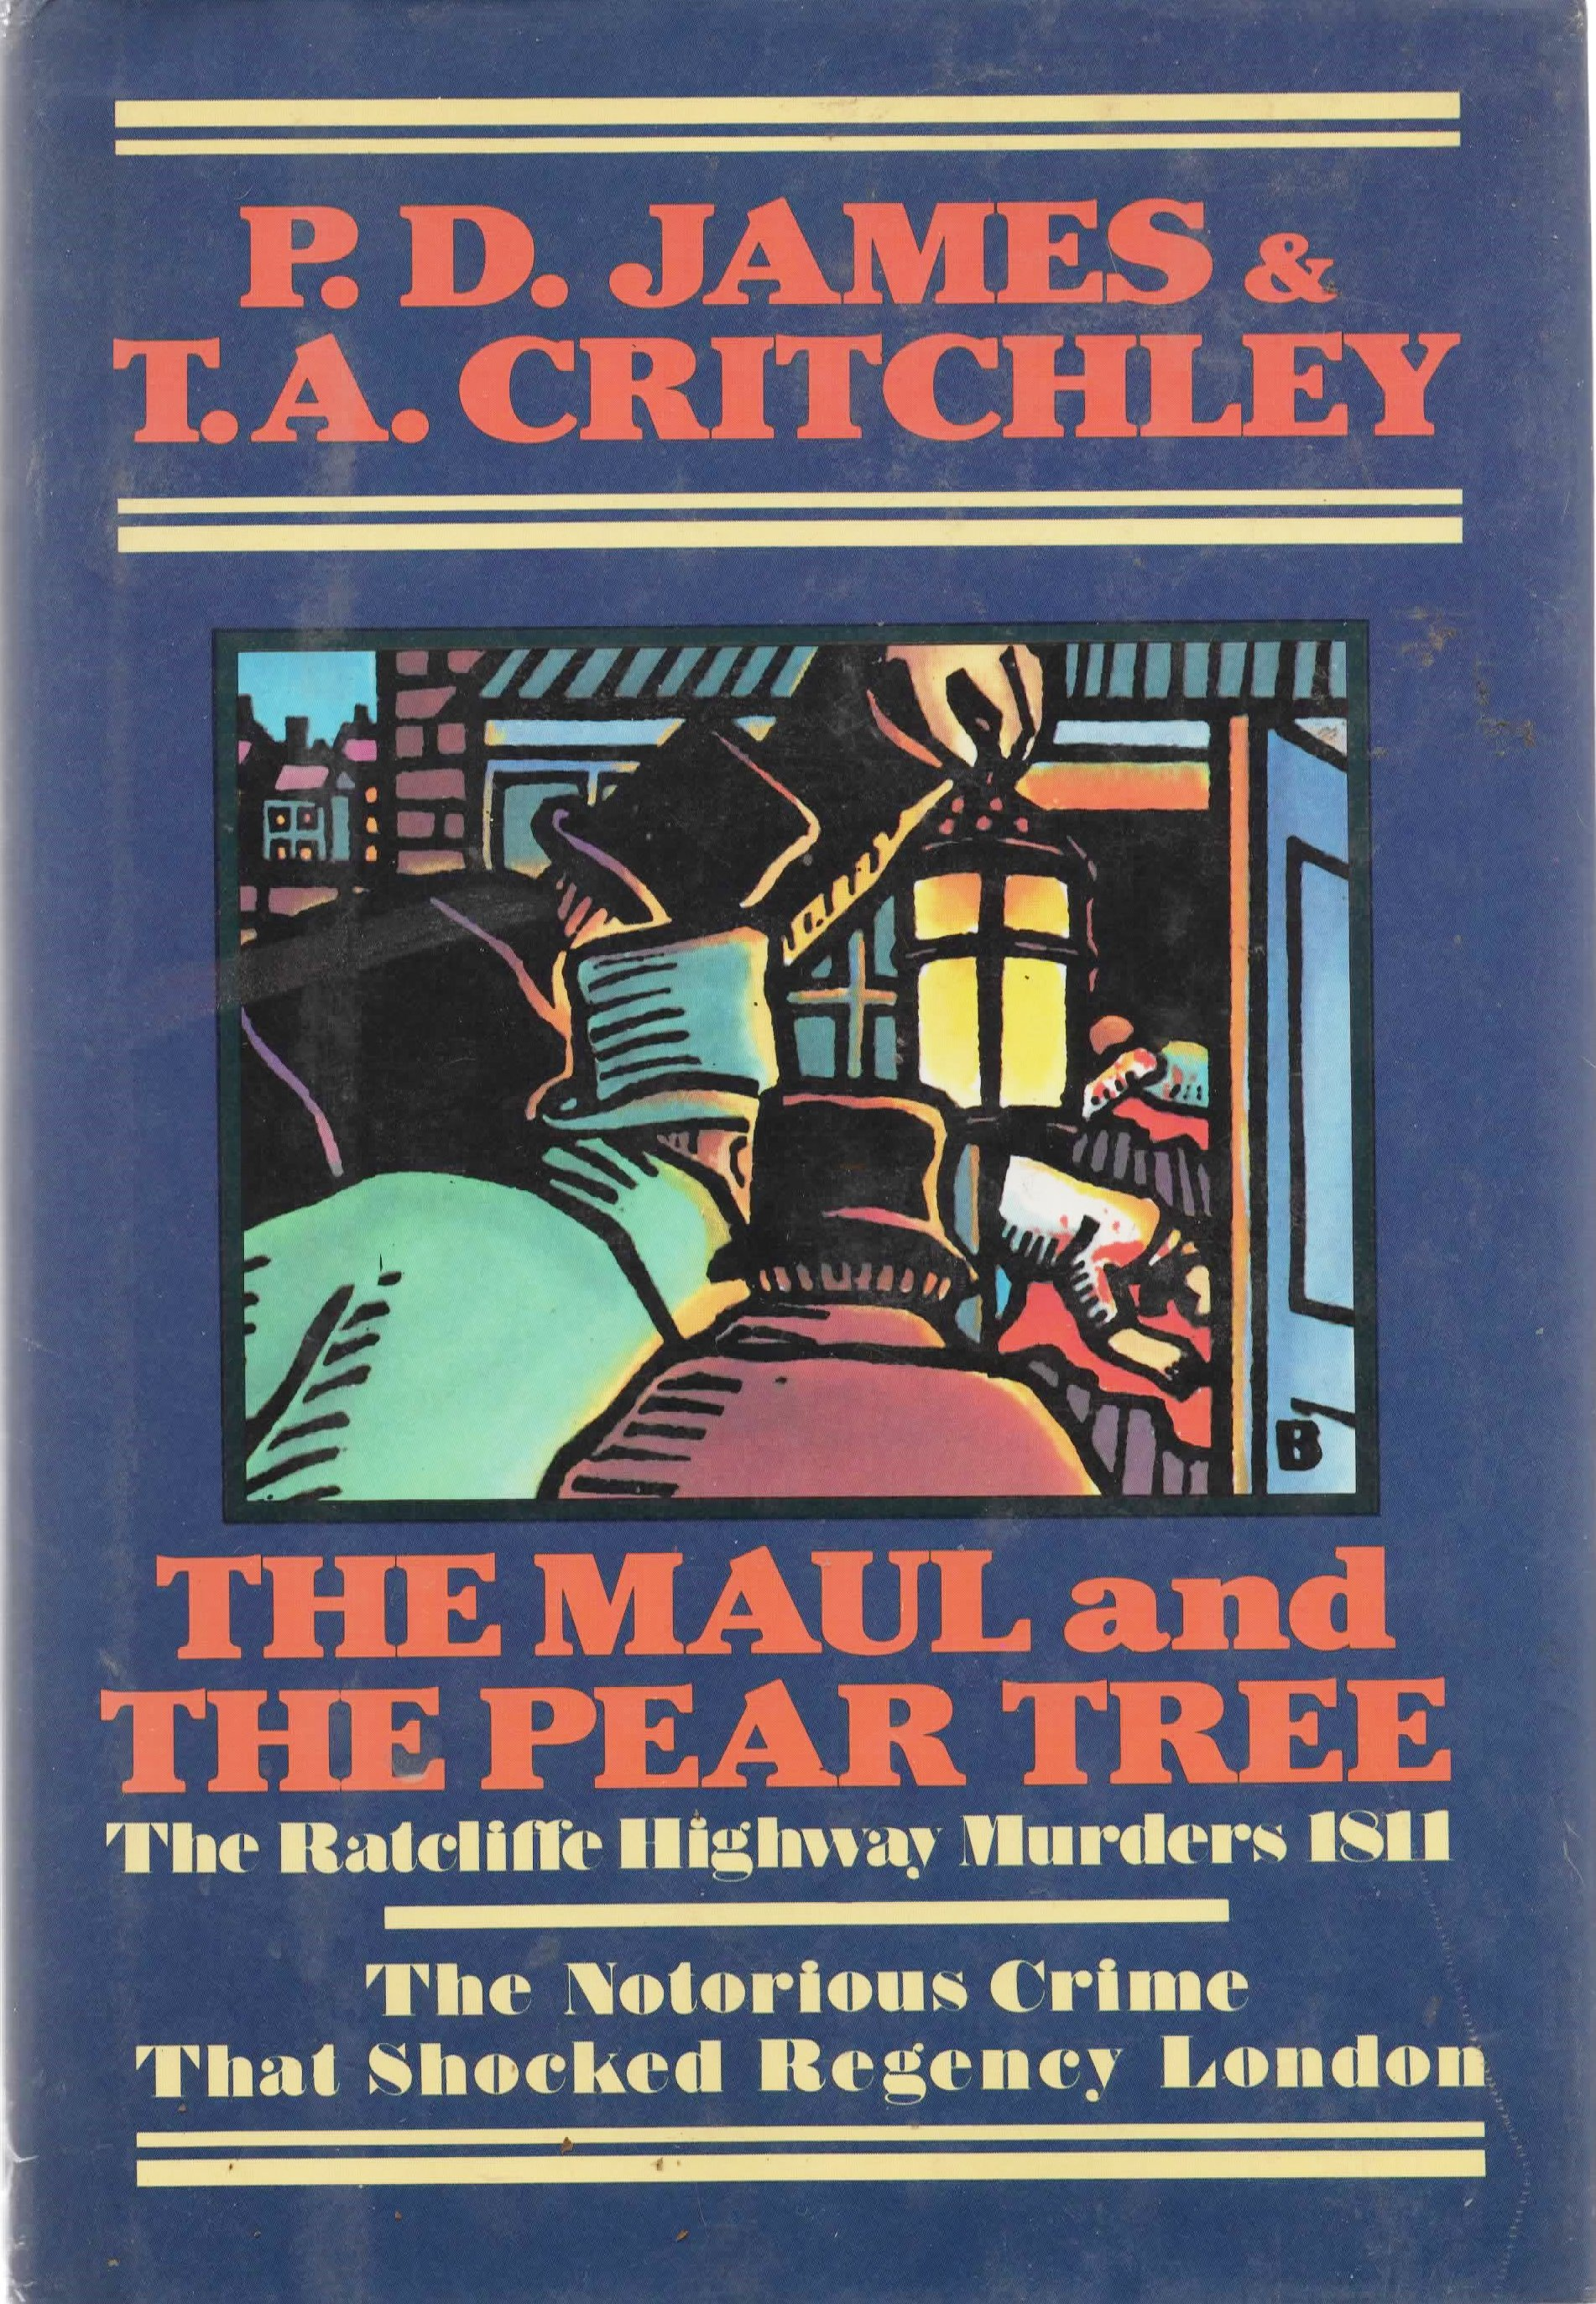 Image for The Maul and the Pear Tree: The Ratcliffe Highway Murders 1811